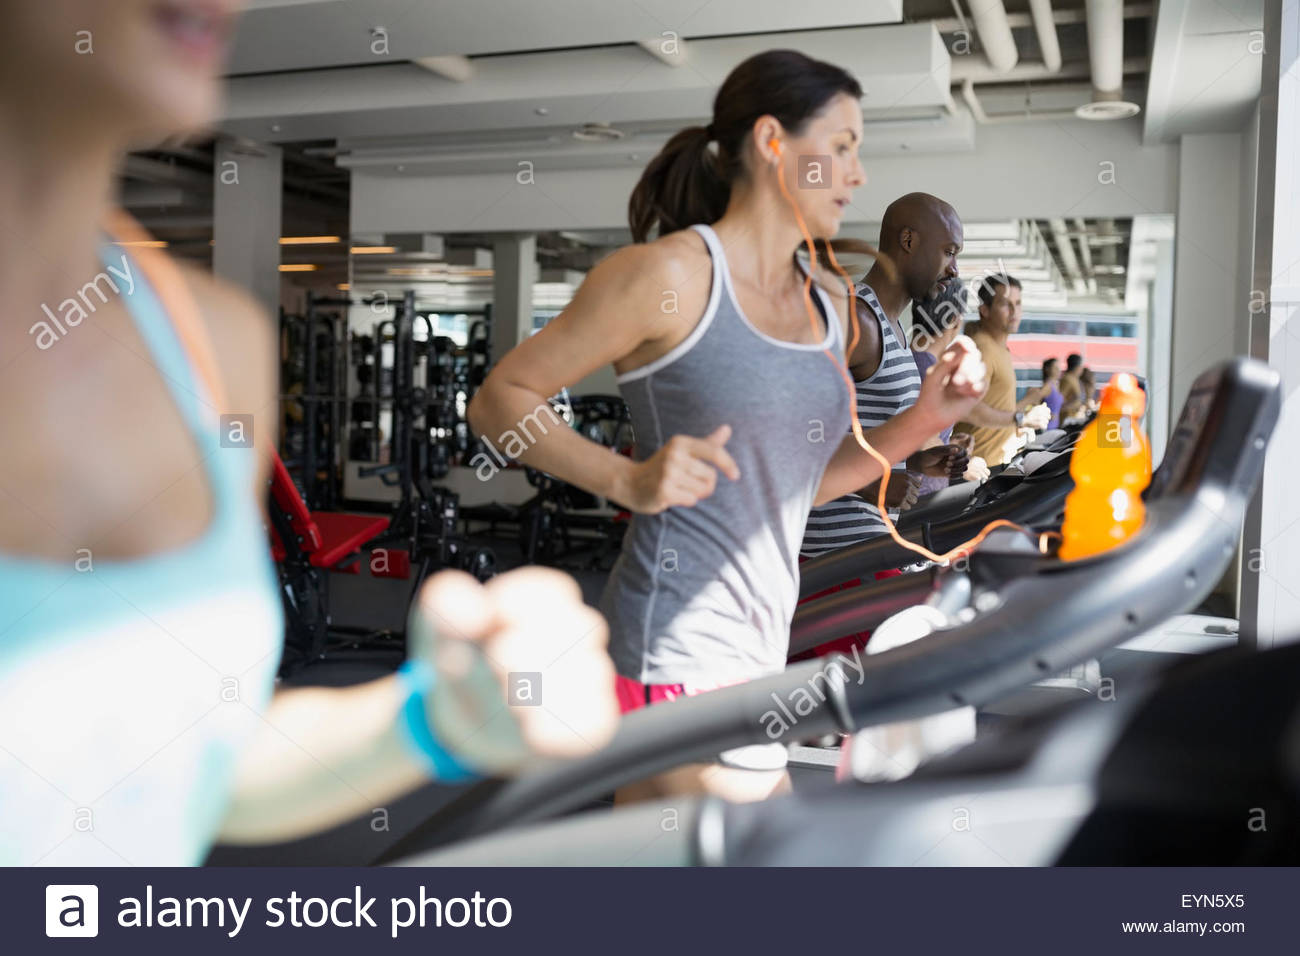 Determined woman running on treadmill at gym - Stock Image